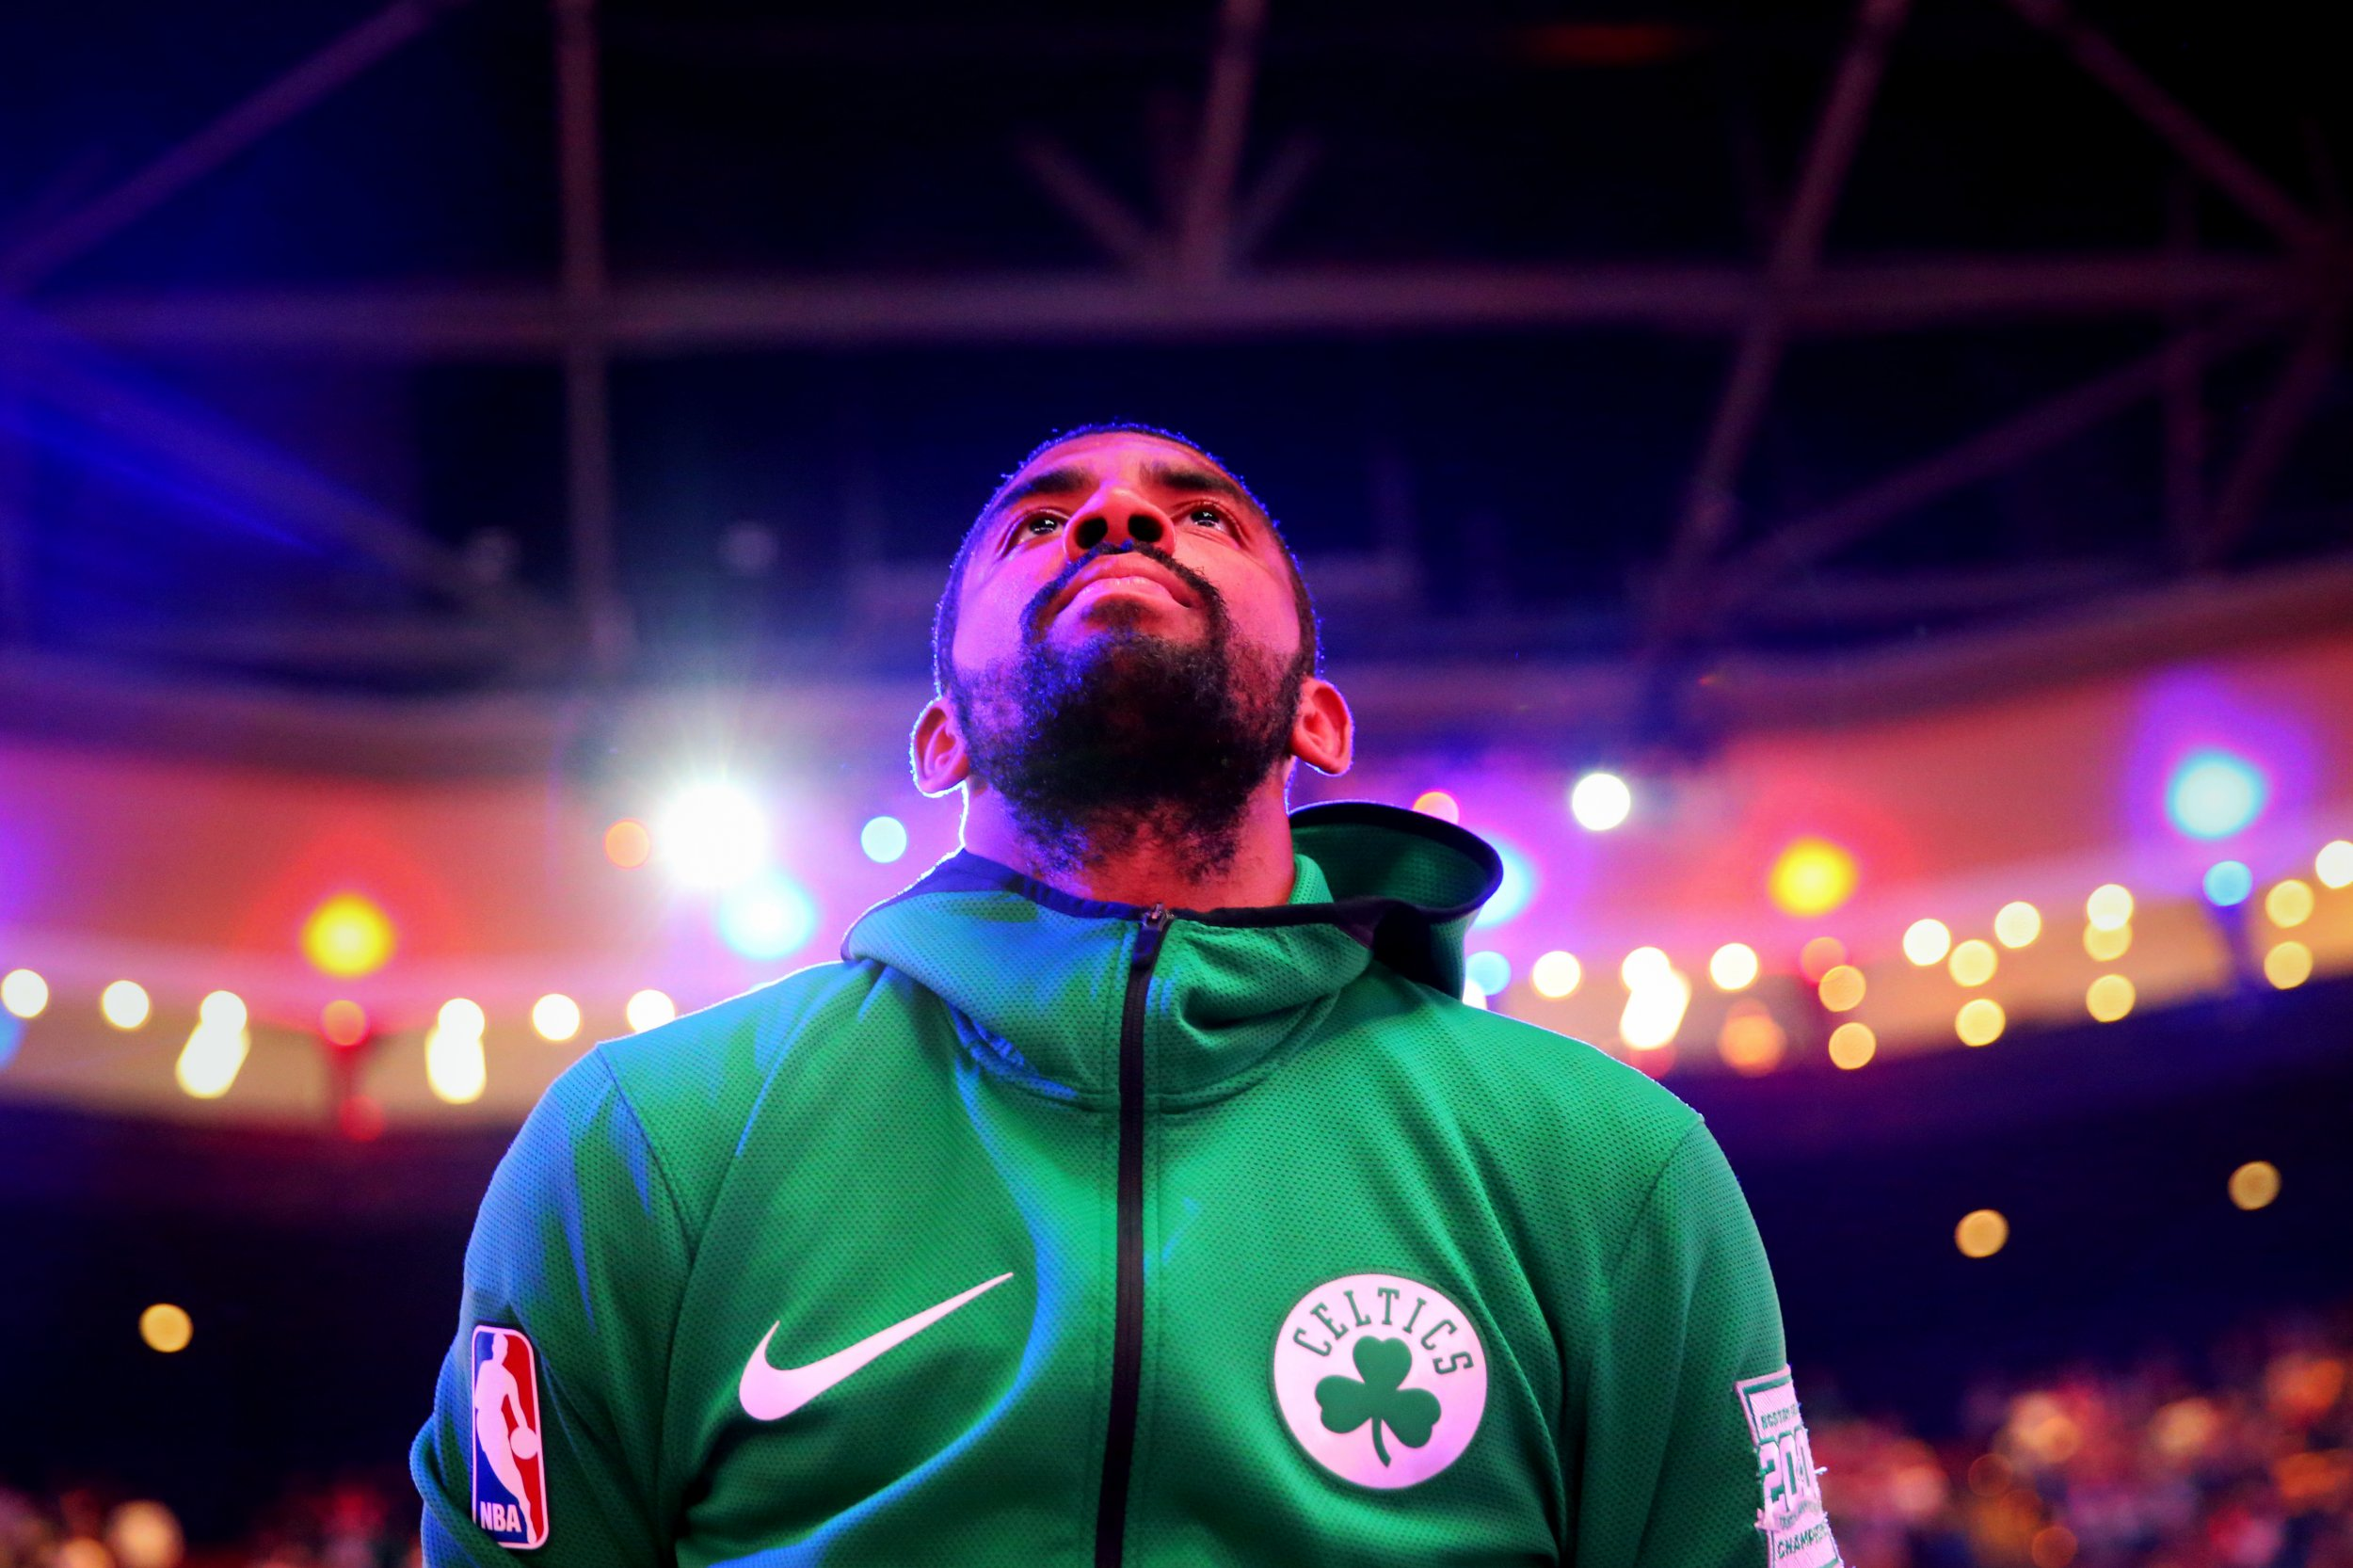 Celtics Won the Kyrie Irving Trade in a Way They Didn't Expect